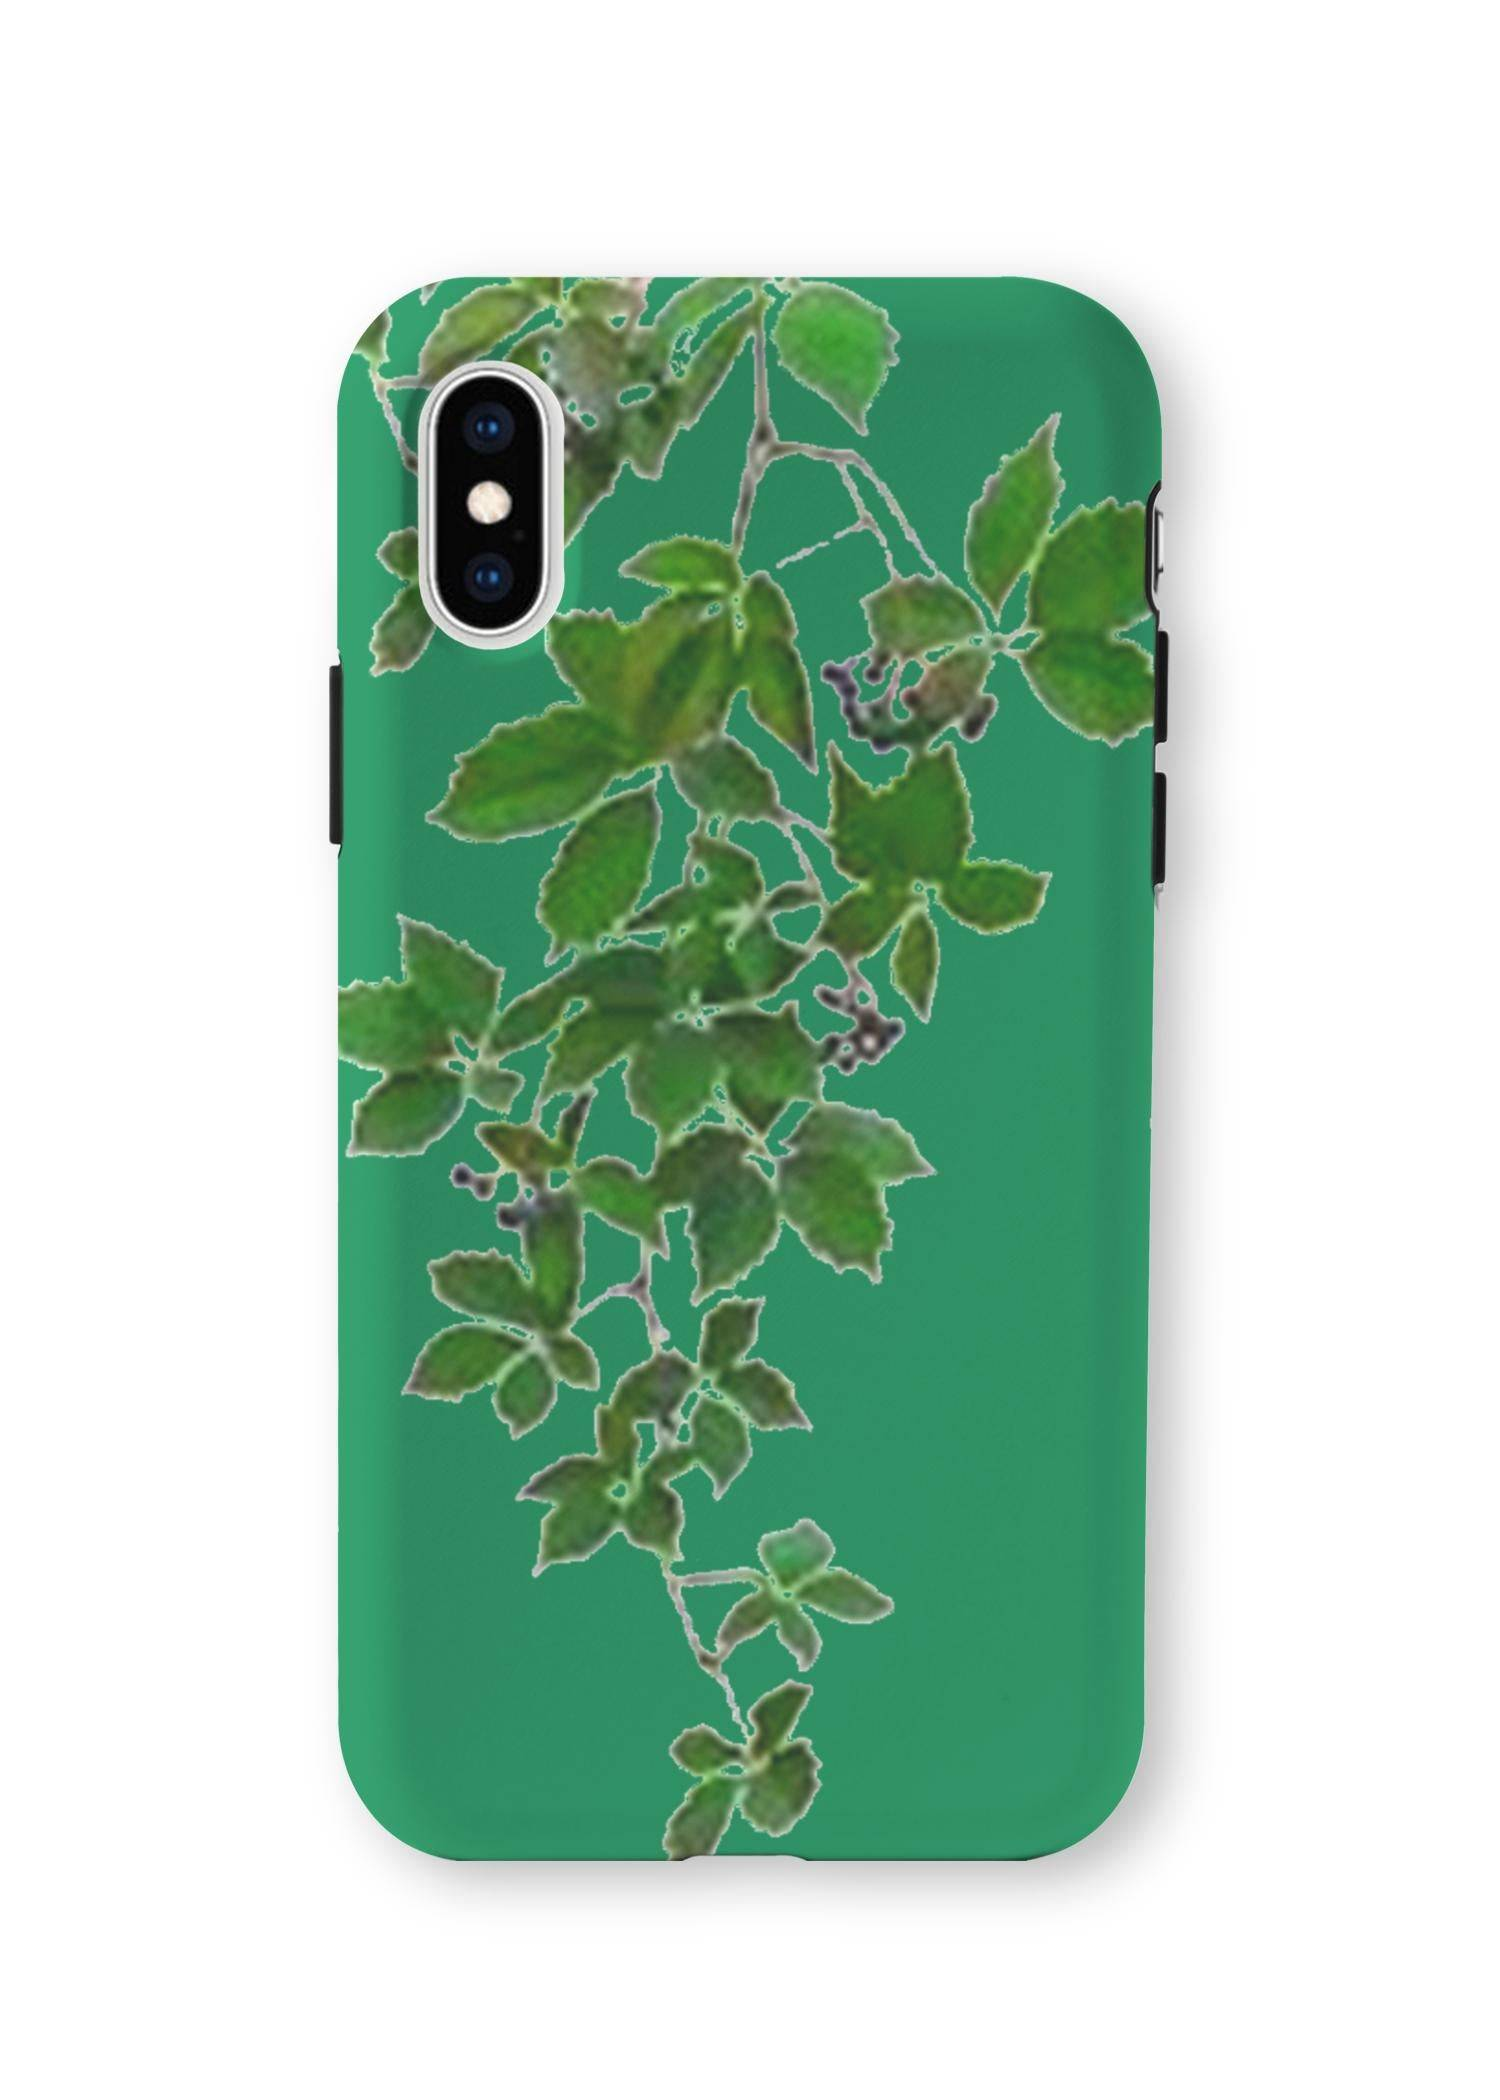 VIDA iPhone Case - Green Hanging Home Decor by VIDA Original Artist  - Size: Extra Small